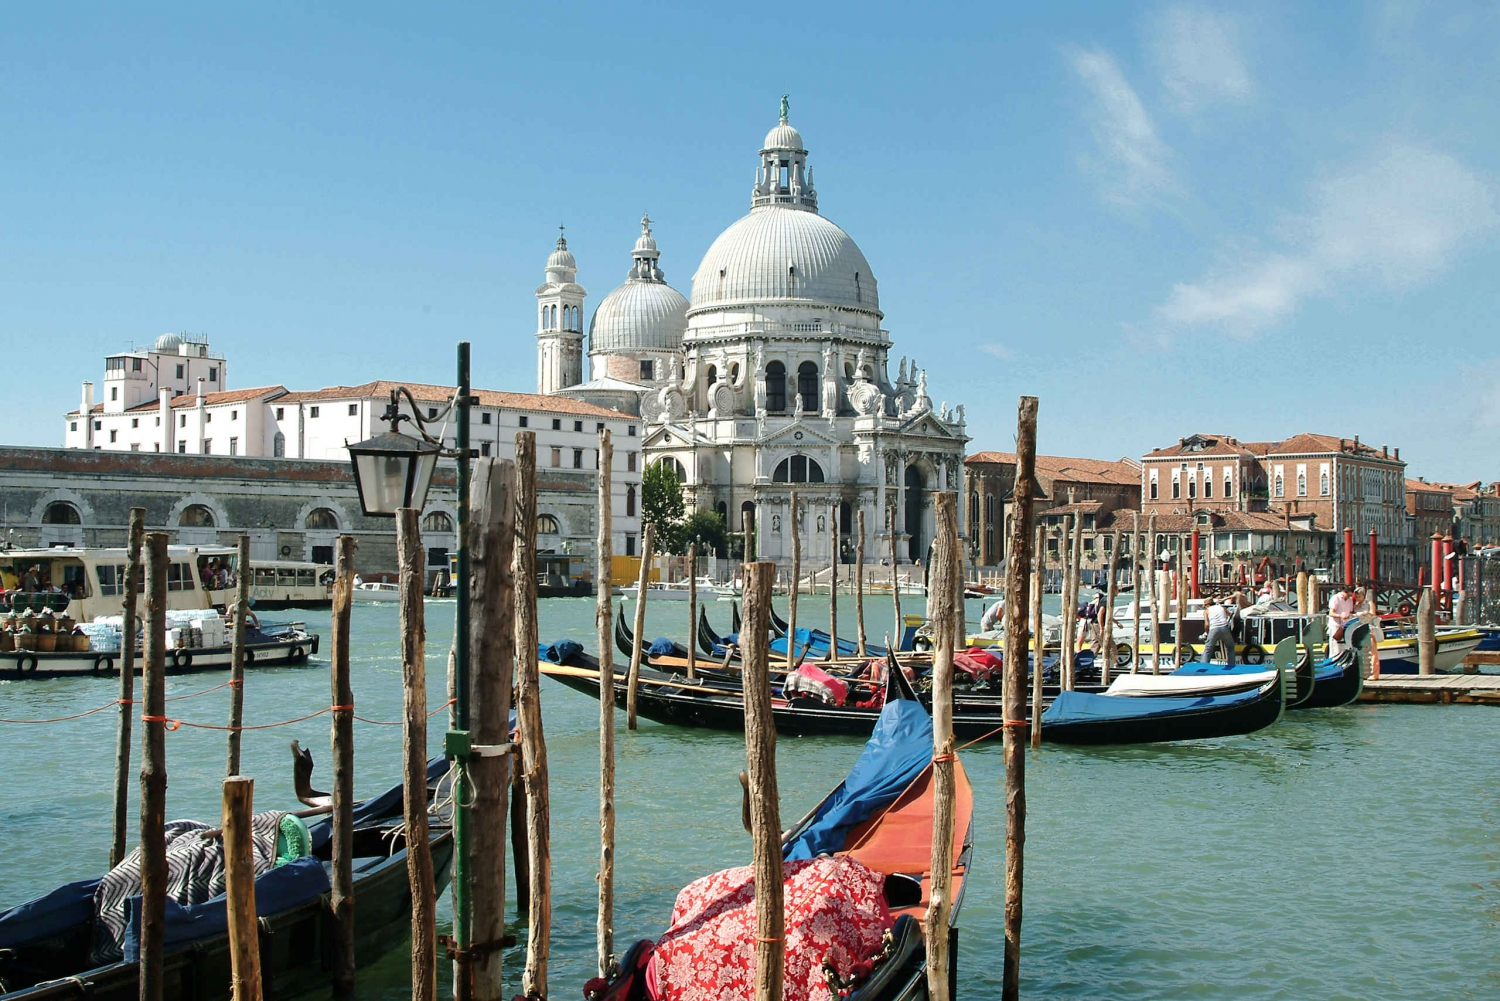 Day Excursion to Venice by Boat from Poreč